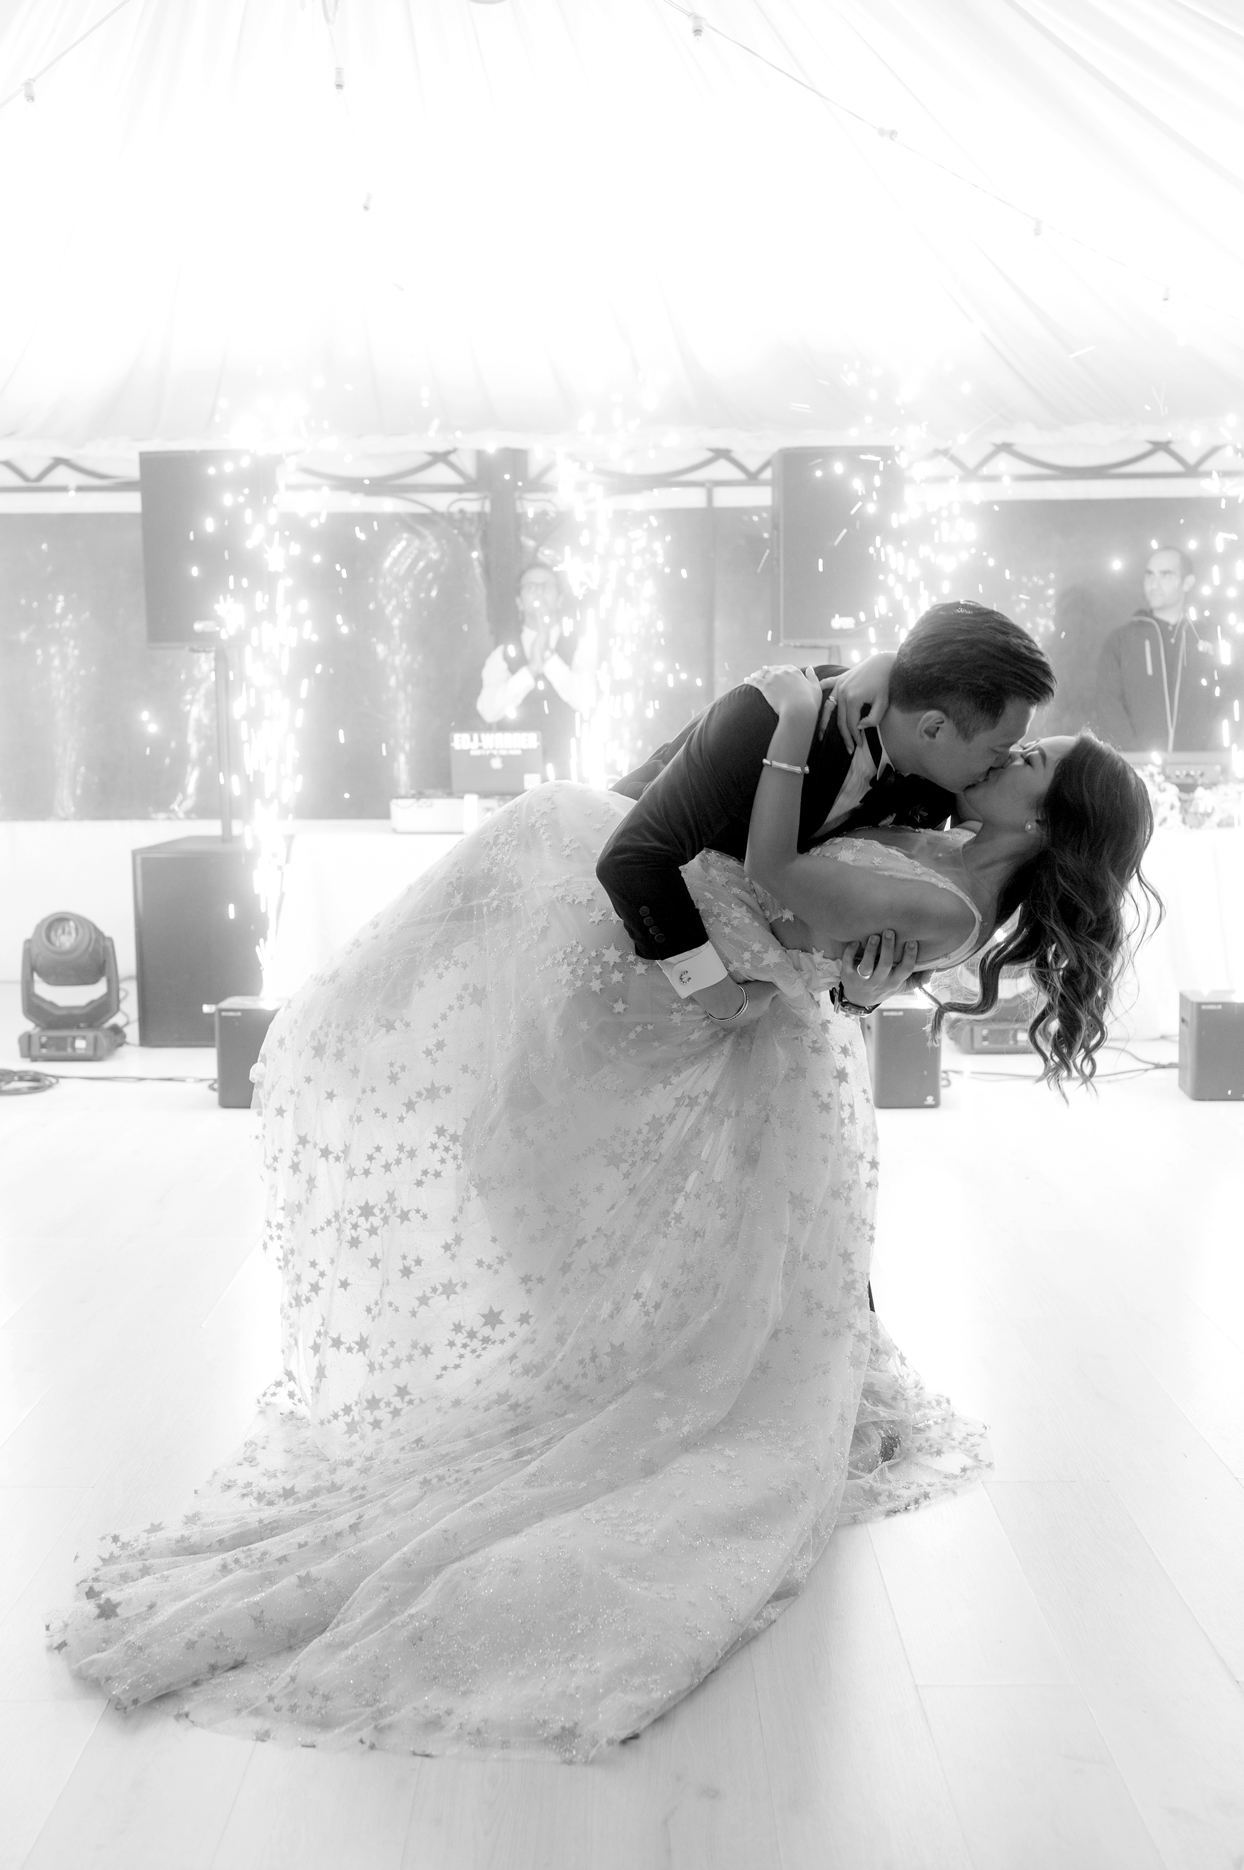 groom dips bride during first dance with sparkler backdrop